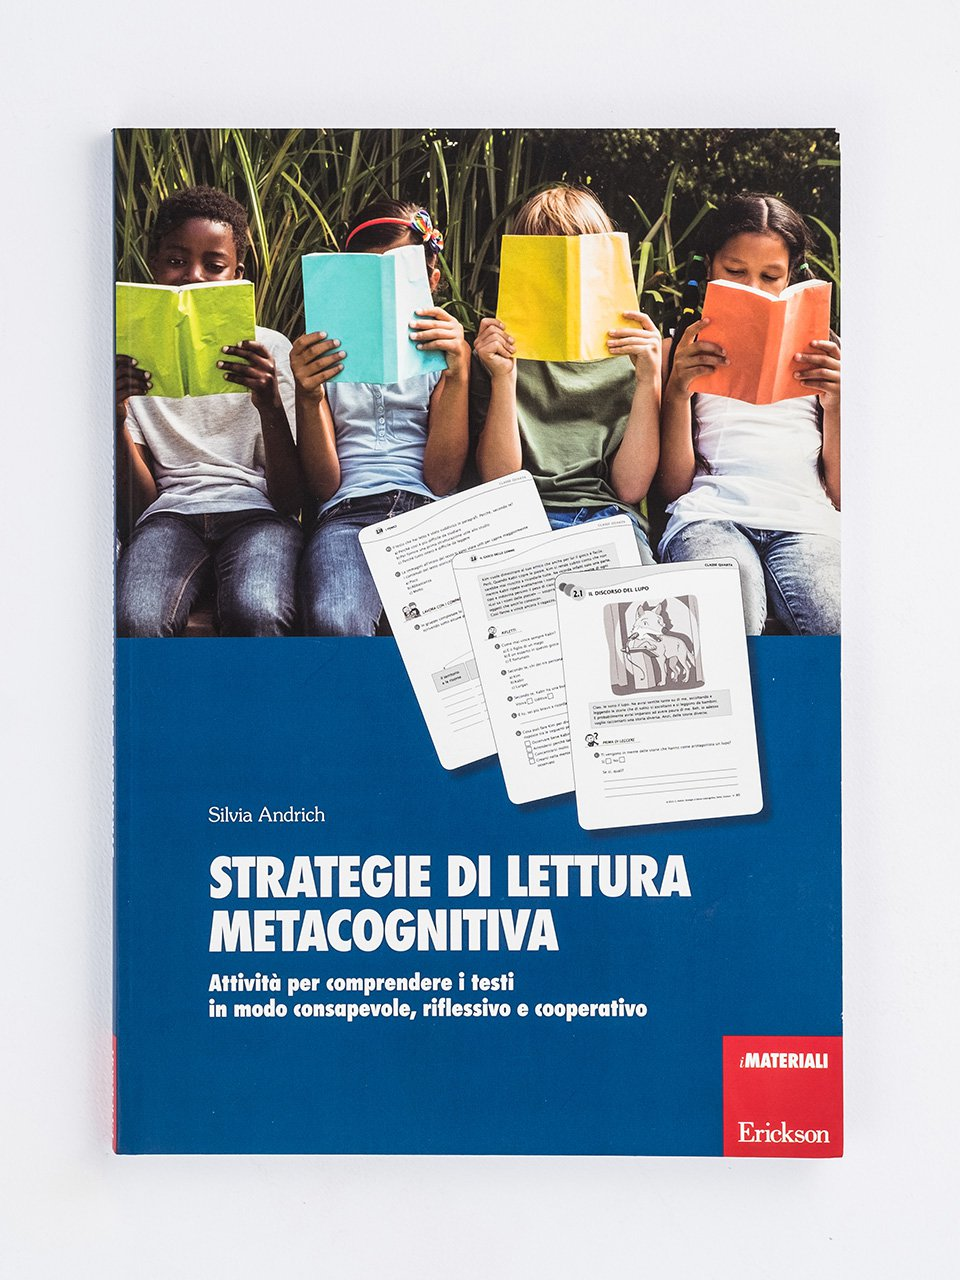 Strategie di lettura metacognitiva - Libri - Erickson